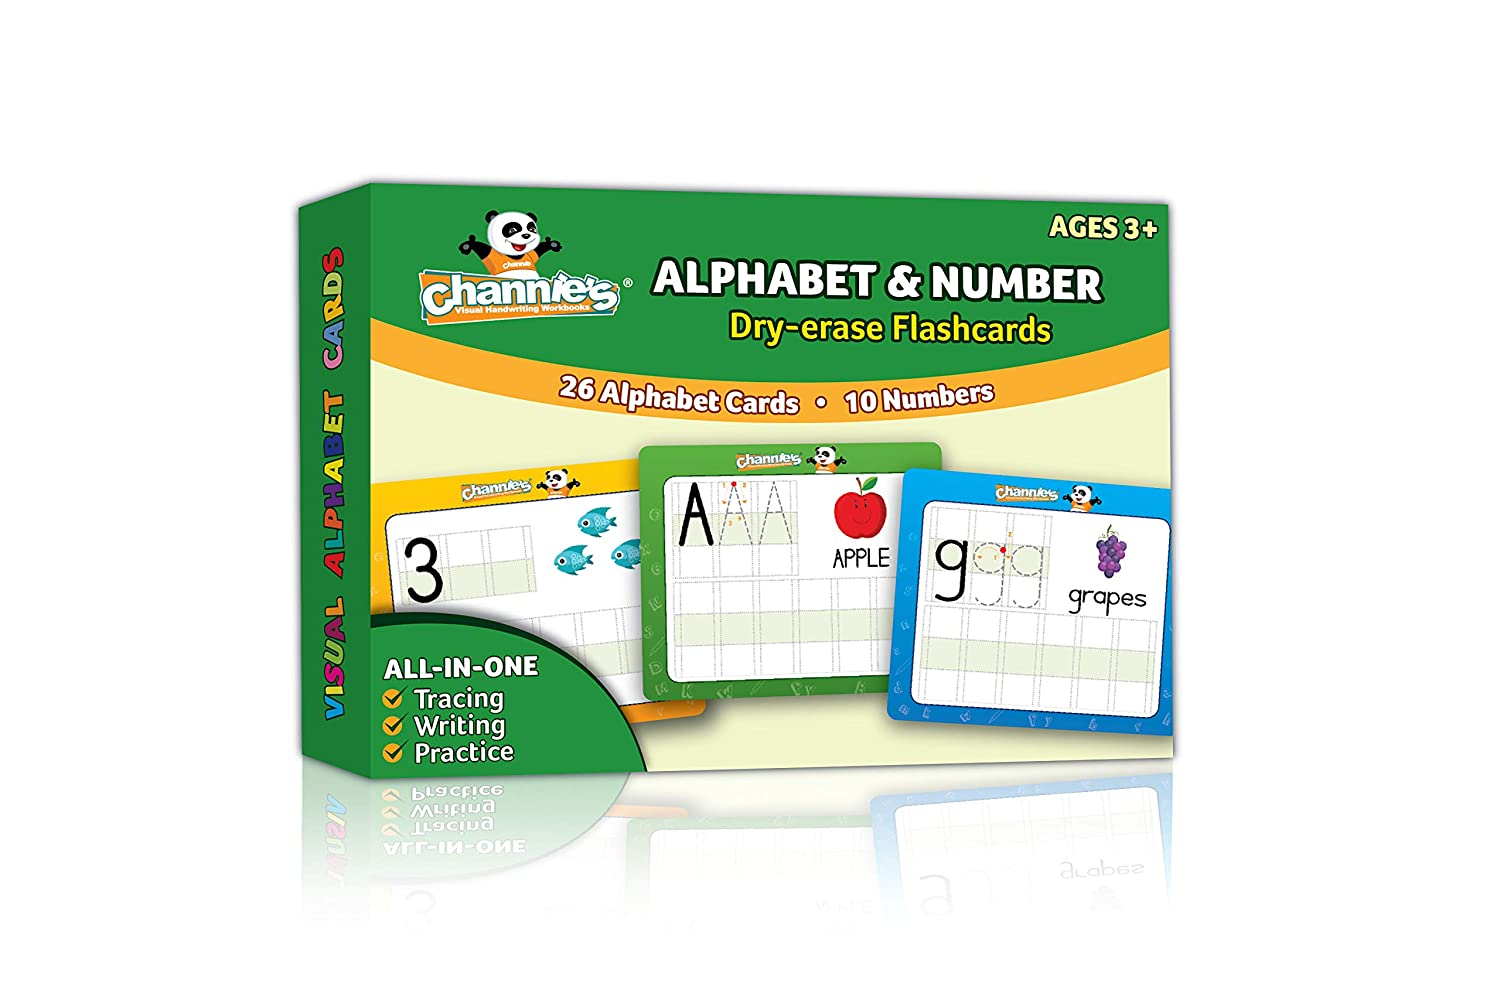 "Channie's Visual Dry Erase Alphabet & Numbers Flashcards, Tracing, Practicing & Writing, ALL In One Flash Cards Size 5.5"" x 4.25 "", Ages 3 and Up, PreK – 1st"